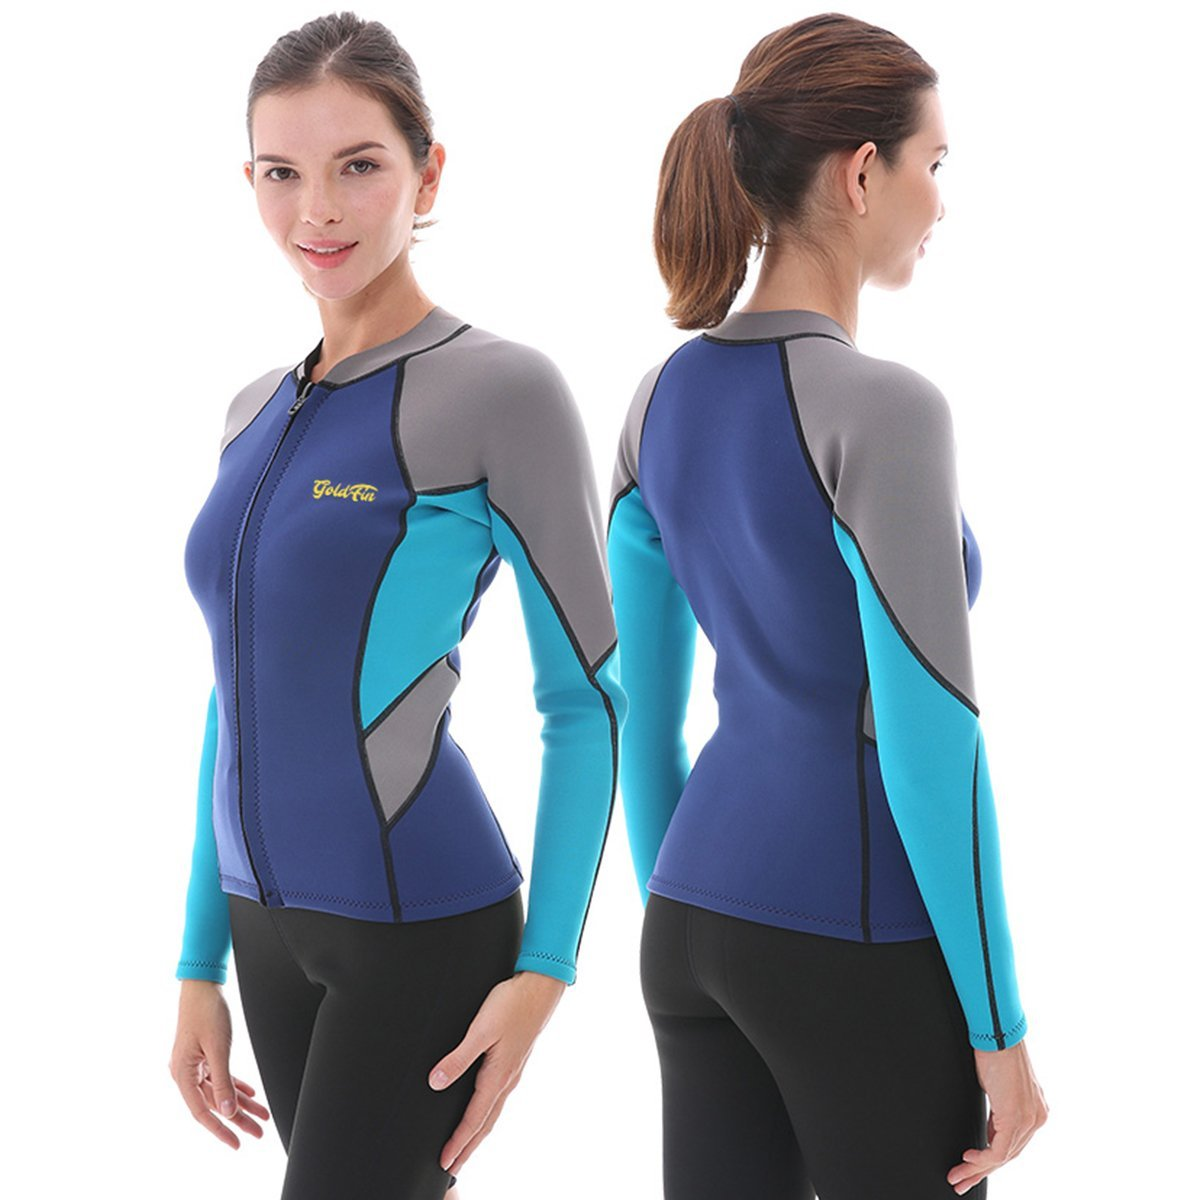 2c72777caf Get Quotations · Goldfin Women s Wetsuit Top